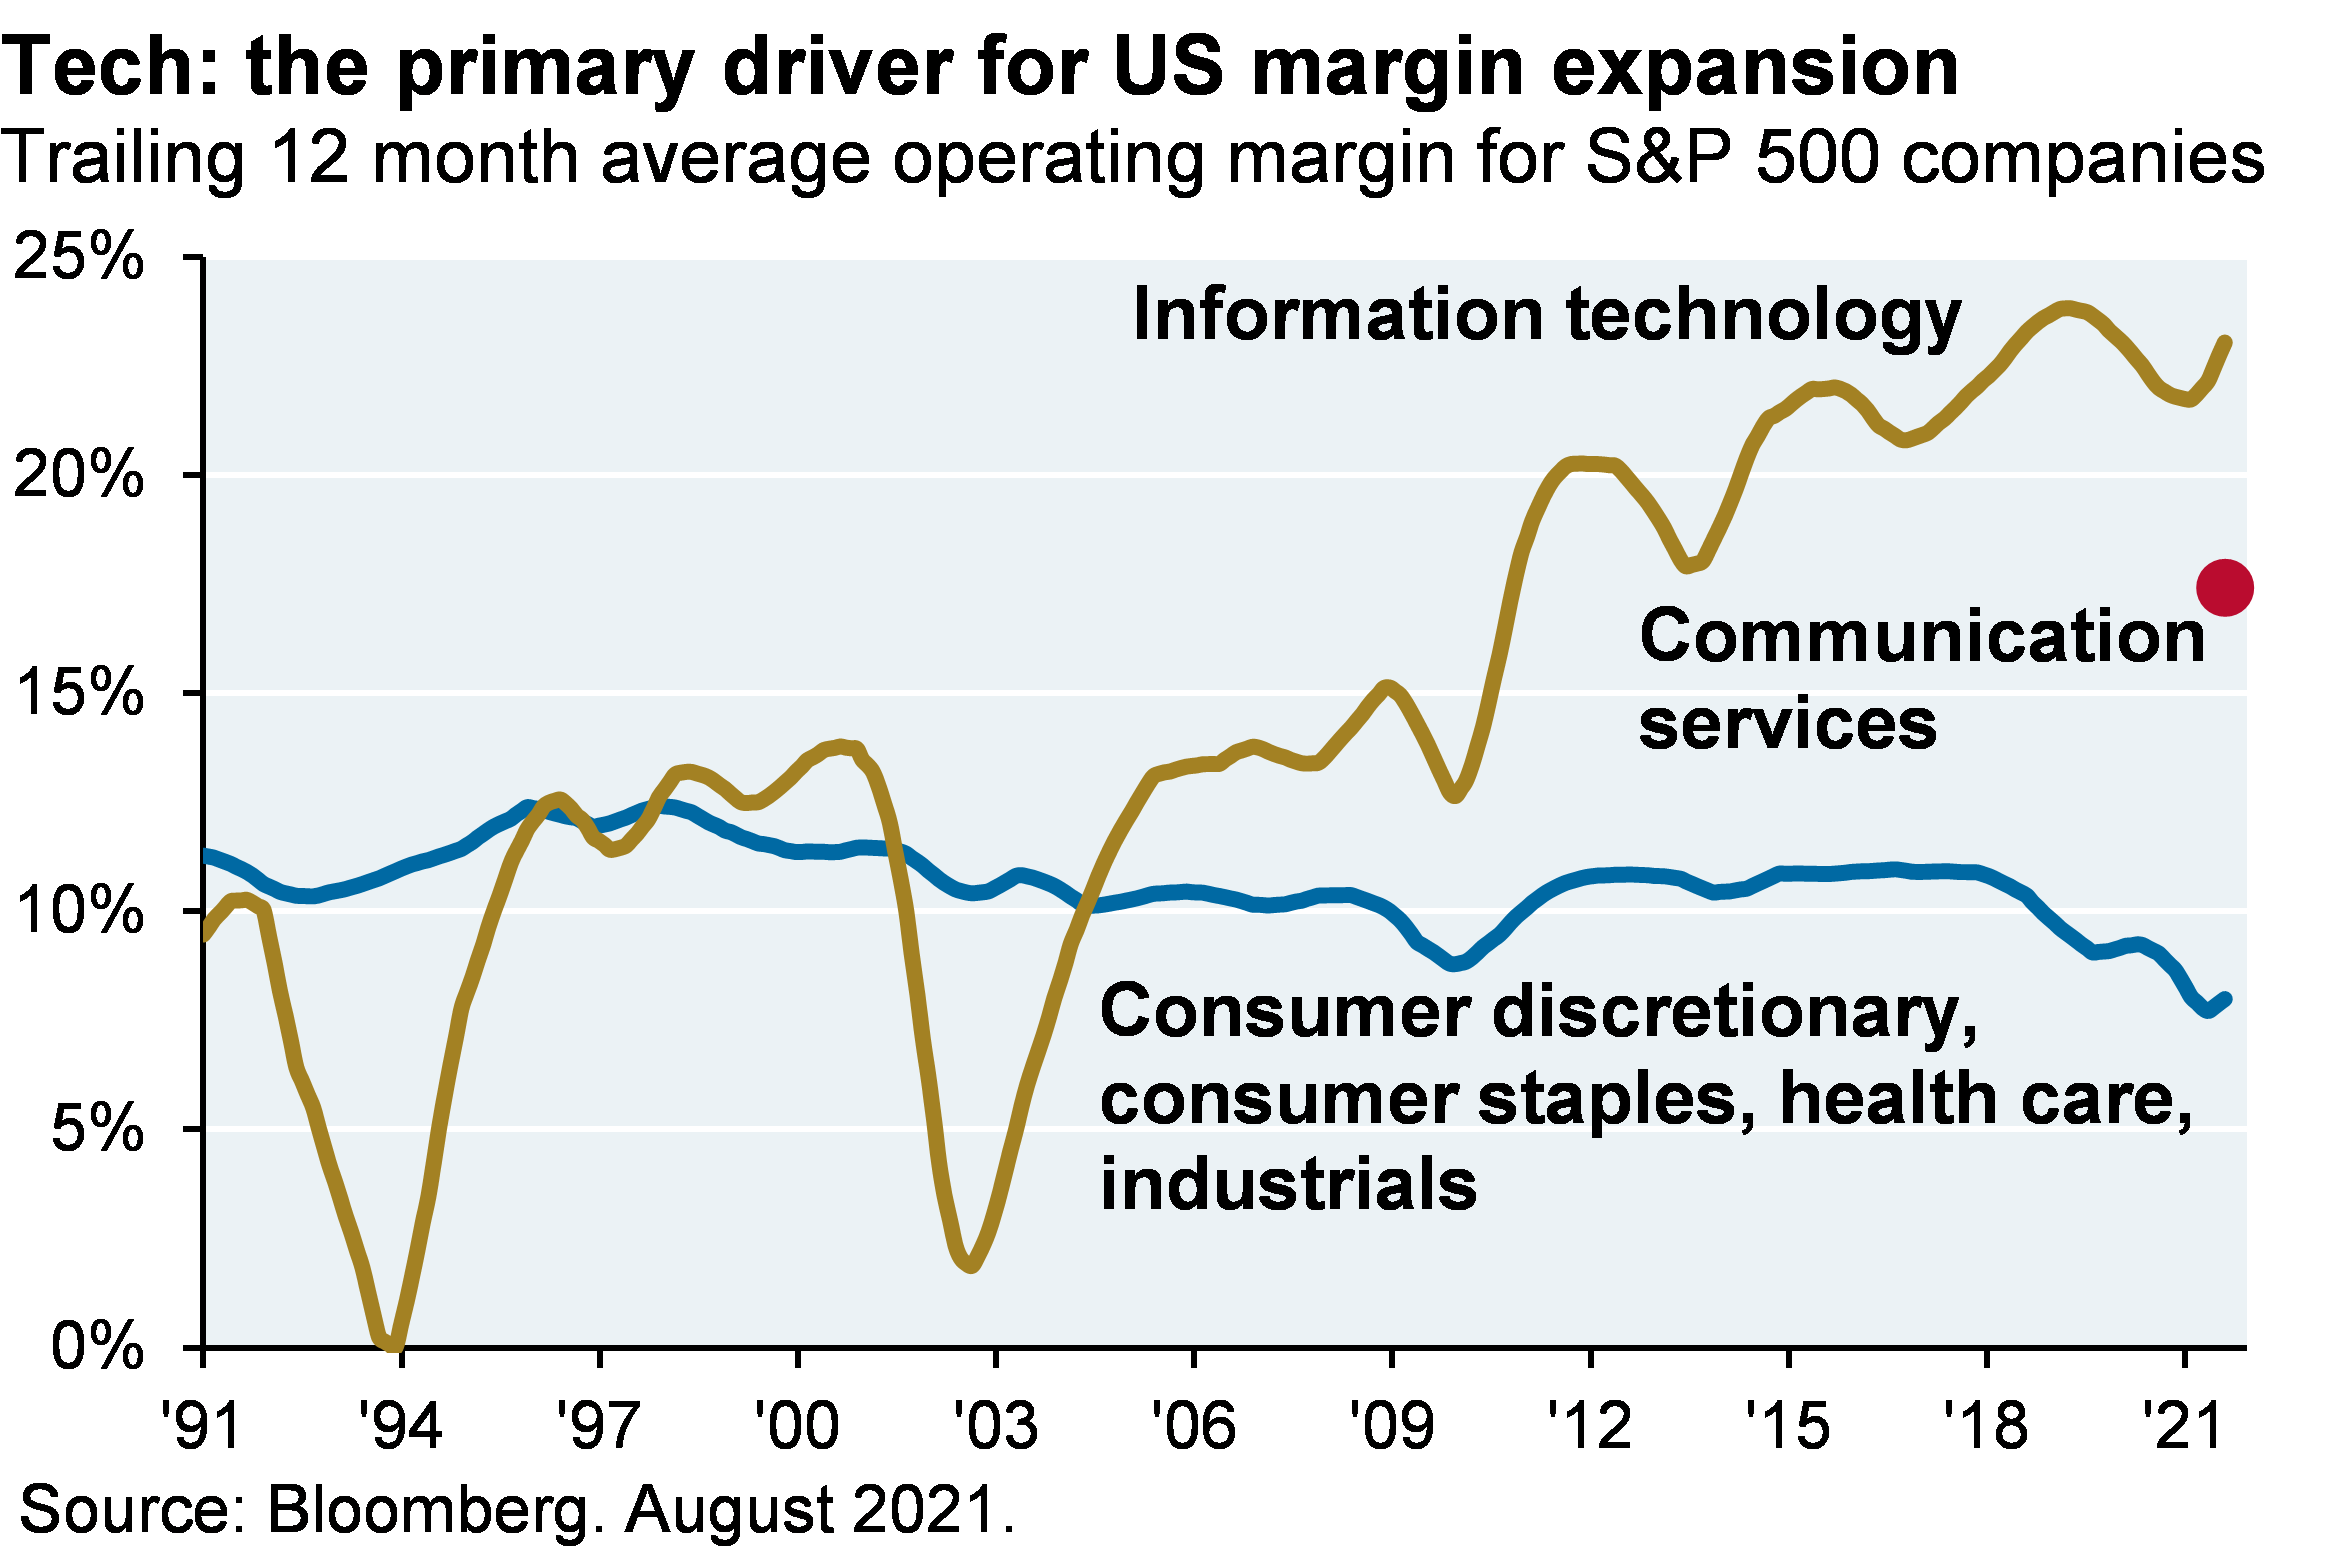 Line chart shows that tech has been the primary driver for US margin expansion. The chart shows the trailing 12-month average operating margin for S&P 500 companies for information technology, communication services and consumer discretionary, consumer staples, health care and industrials. The operating margin for information technology has risen from around 2% in 2003 to its latest value of around 22%. The average operating margin for consumer discretionary, consumer staples, health care and industrials has remained relatively constant at around 10% but has recently declined to around 8%. The latest operating margin for communication services is around 17%.